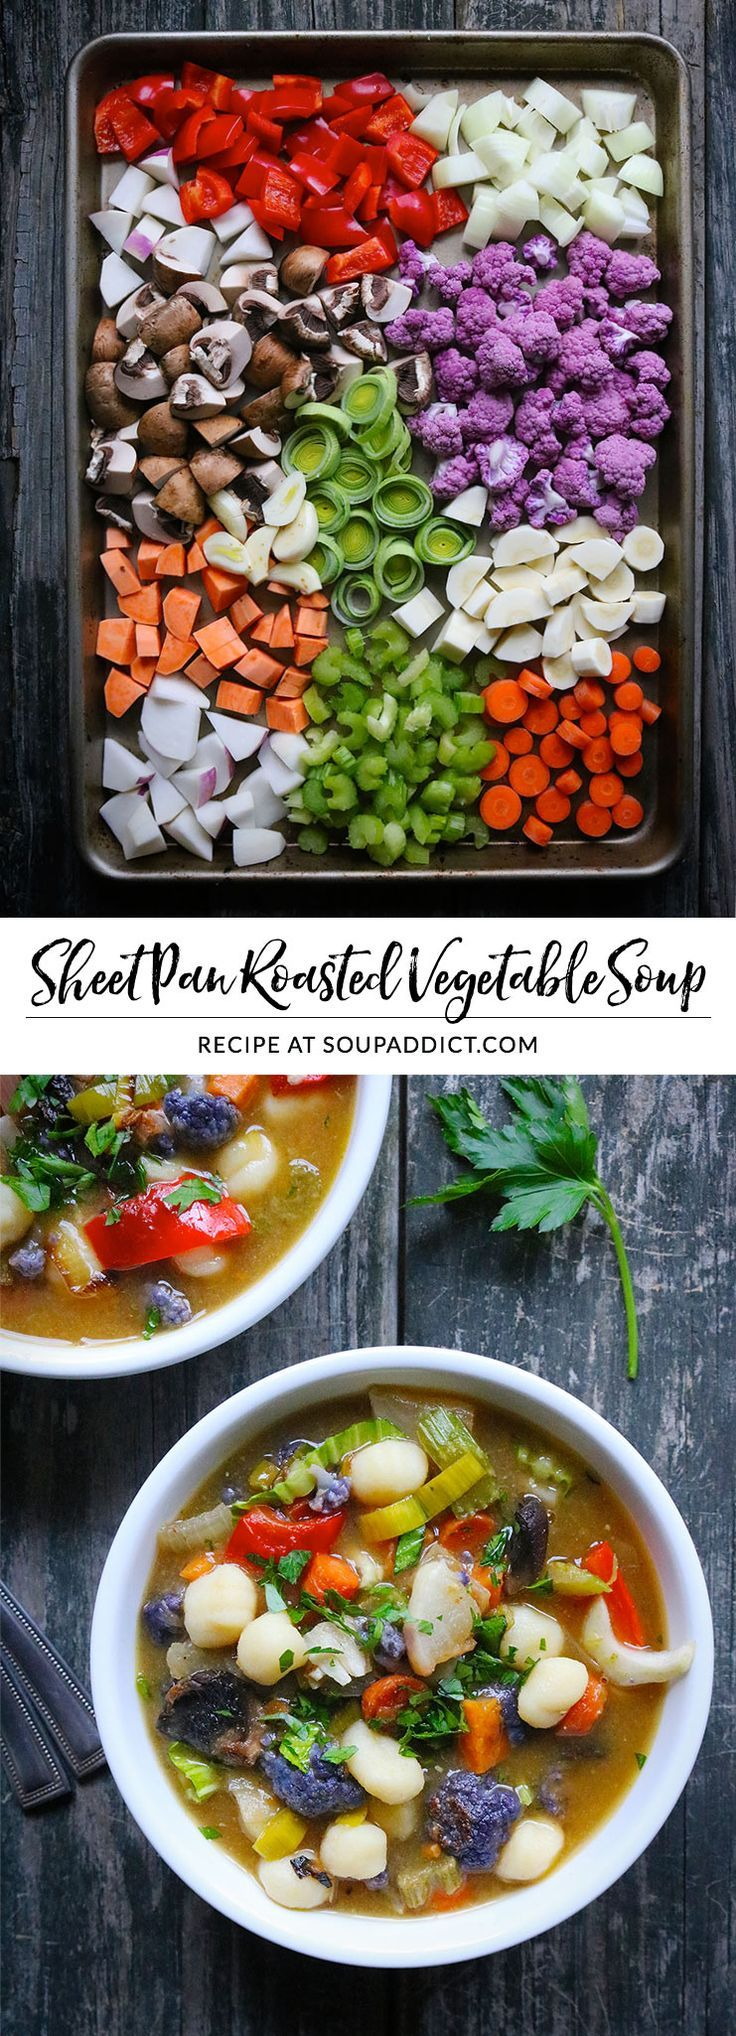 So easy to prepare, sheet pan roasted vegetable soup with gnocchi and pesto adds a healthy dose of vegetables to your day! Roasting the vegetables caramelizes them with sweet savoriness, and makes the soup extra special! Use a rainbow of vegetables - good